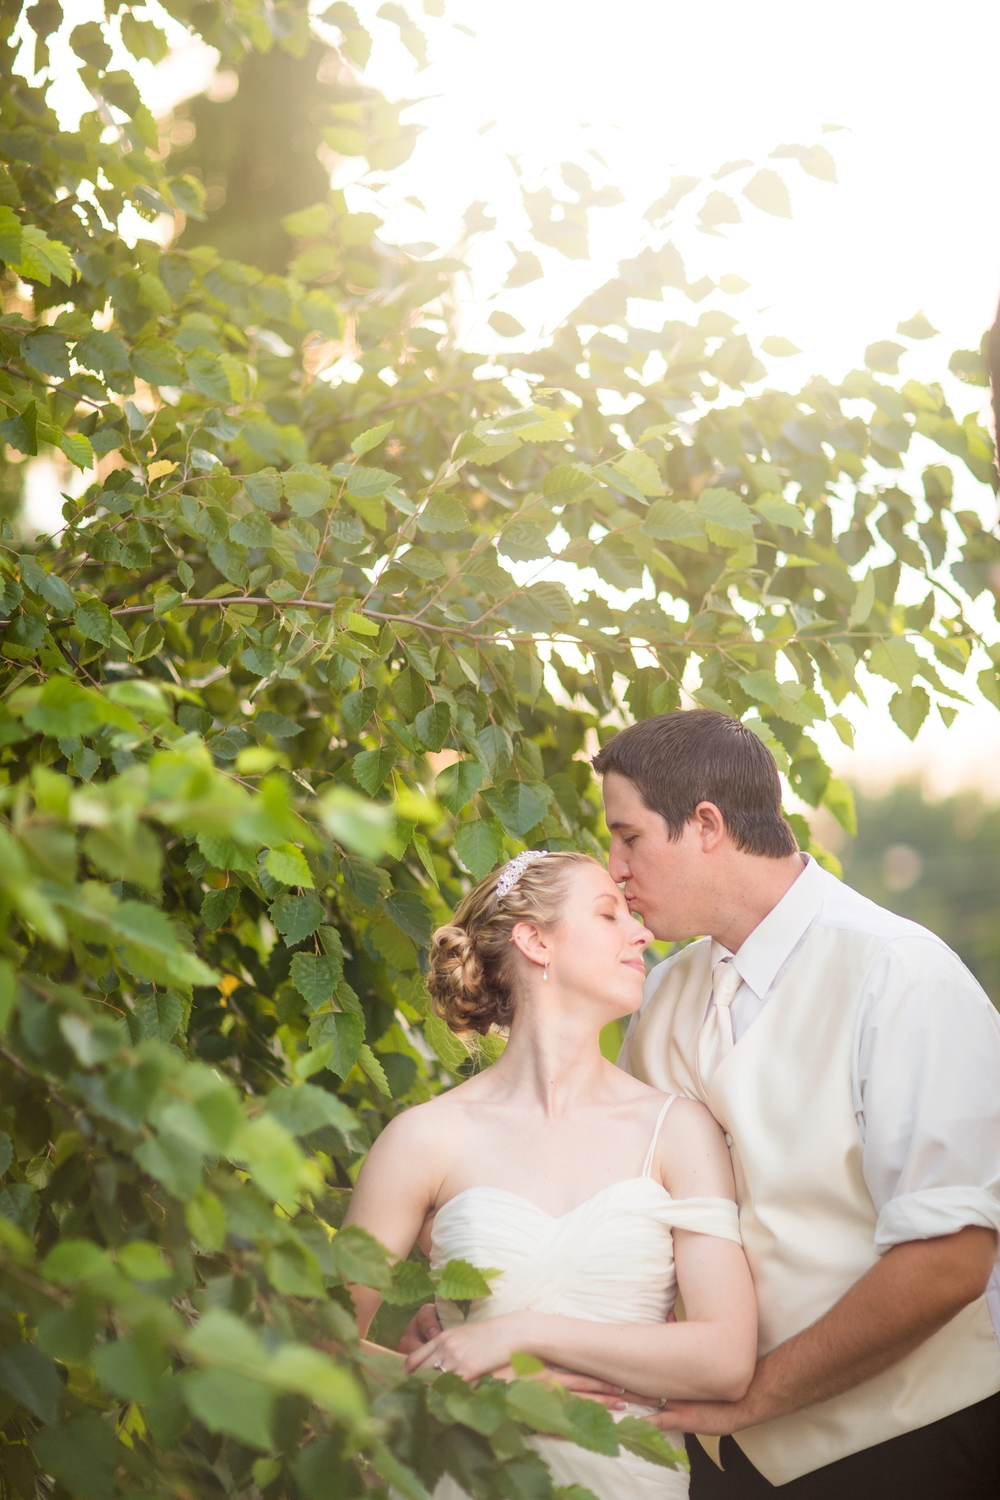 We were able to sneak Debra and Zach outside for a second round of photos during golden hour - the light was killer!